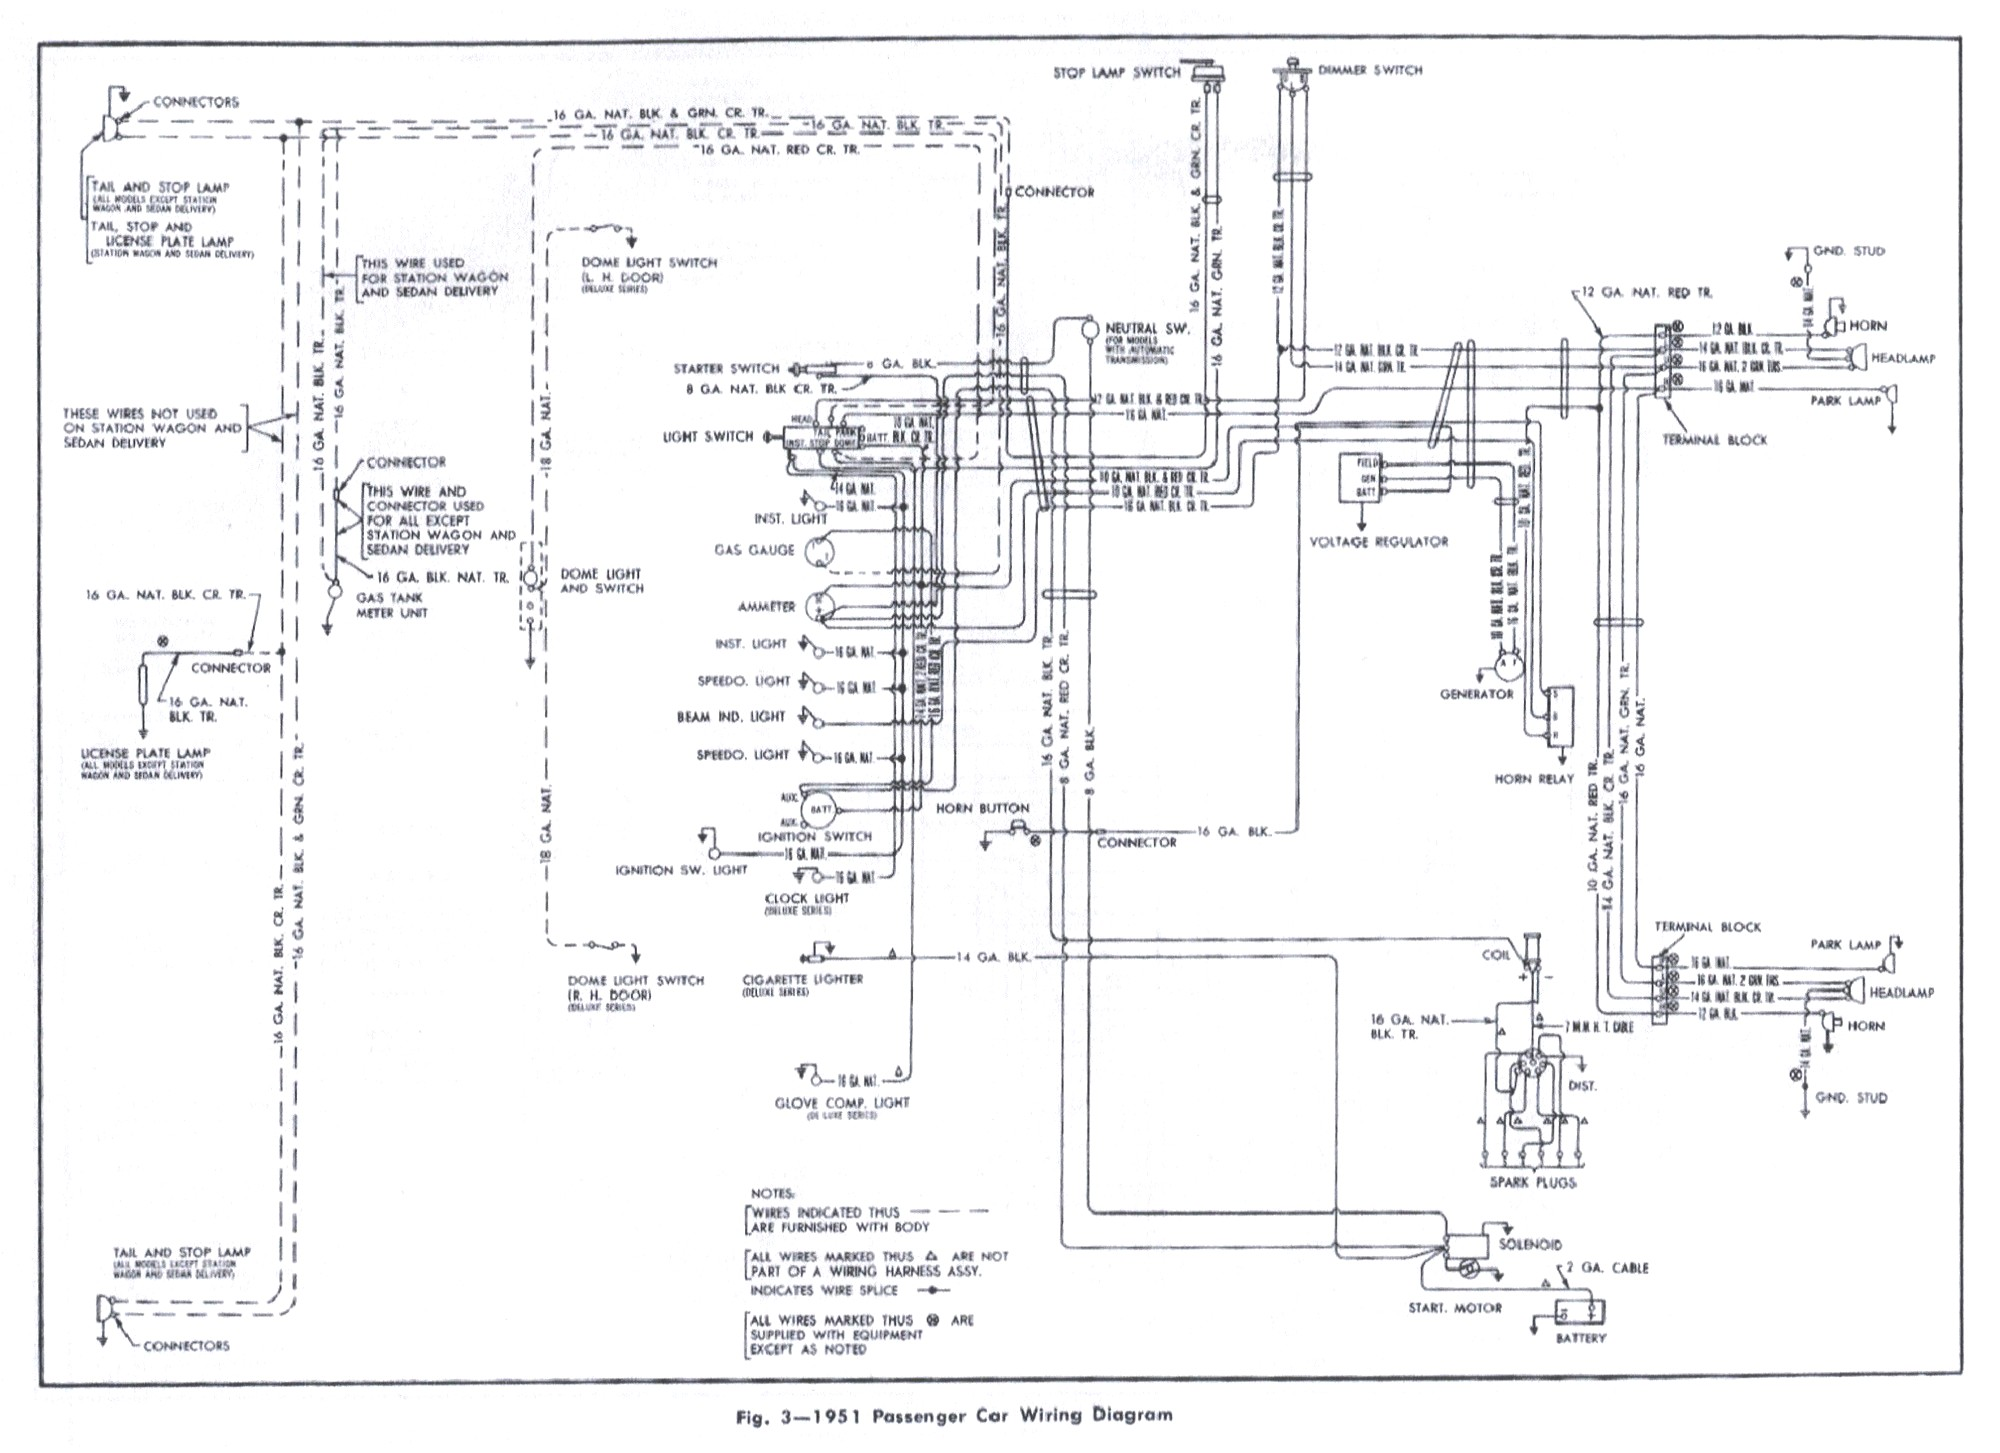 s wiring diagram wiring diagram and schematic design anyone have a tail light wiring diagram 1998 2 2l pickup s 10 forum wiring diagrams for 2000 chevy s10